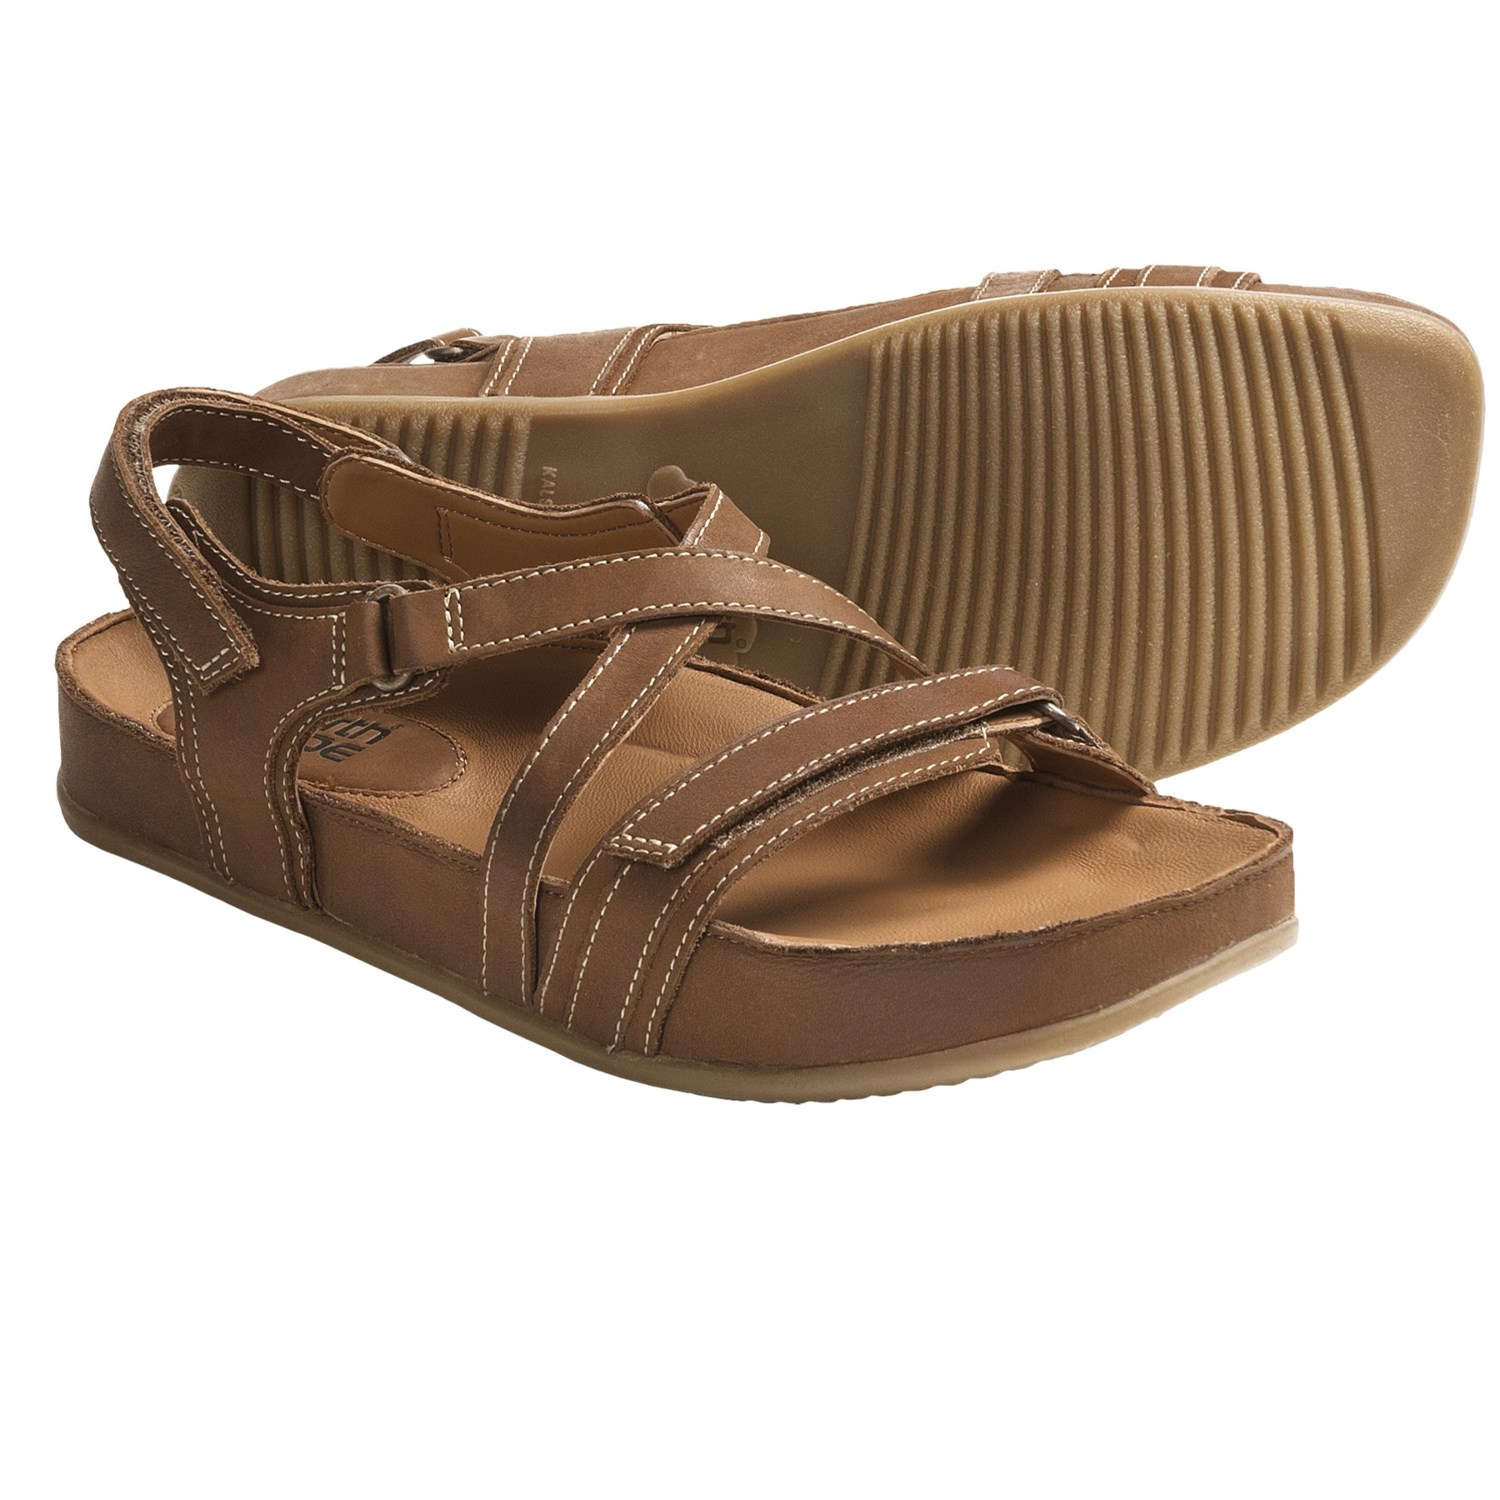 Kalso Earth Ramble Sandals (For Women) 5087P - Save 71%